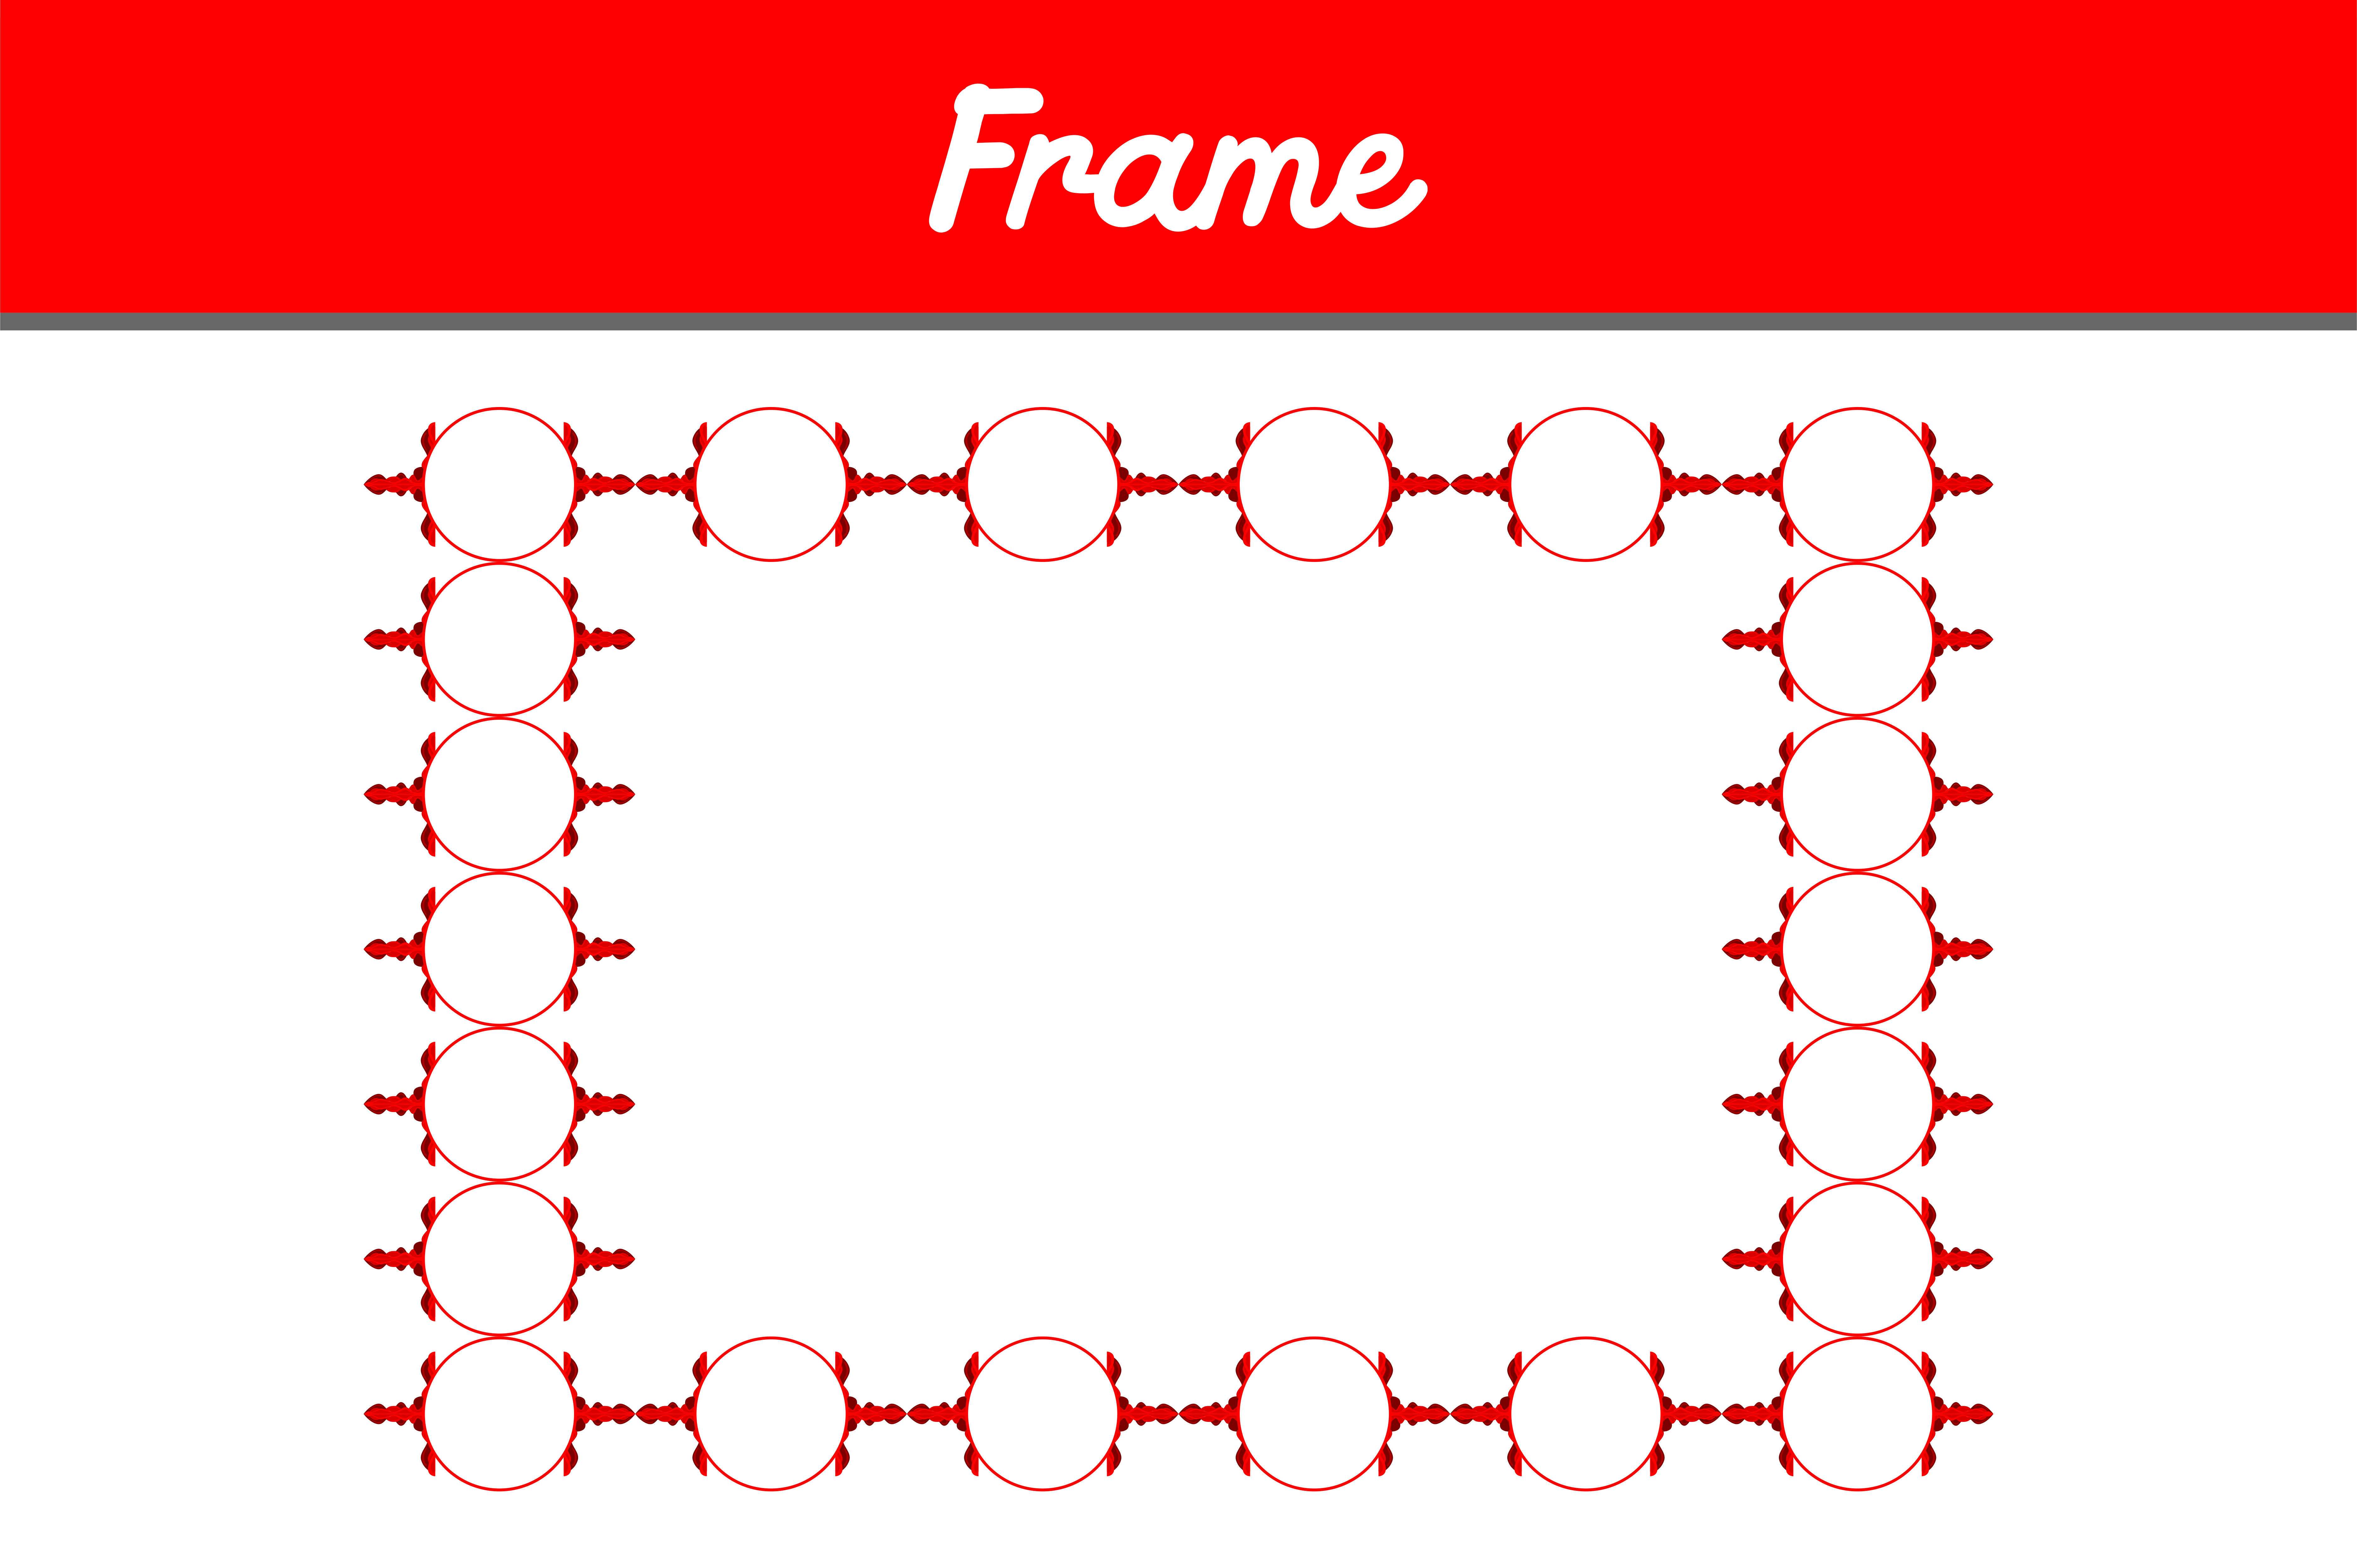 Download Free Red Border Frame Ornament Graphic By Arief Sapta Adjie Ii for Cricut Explore, Silhouette and other cutting machines.